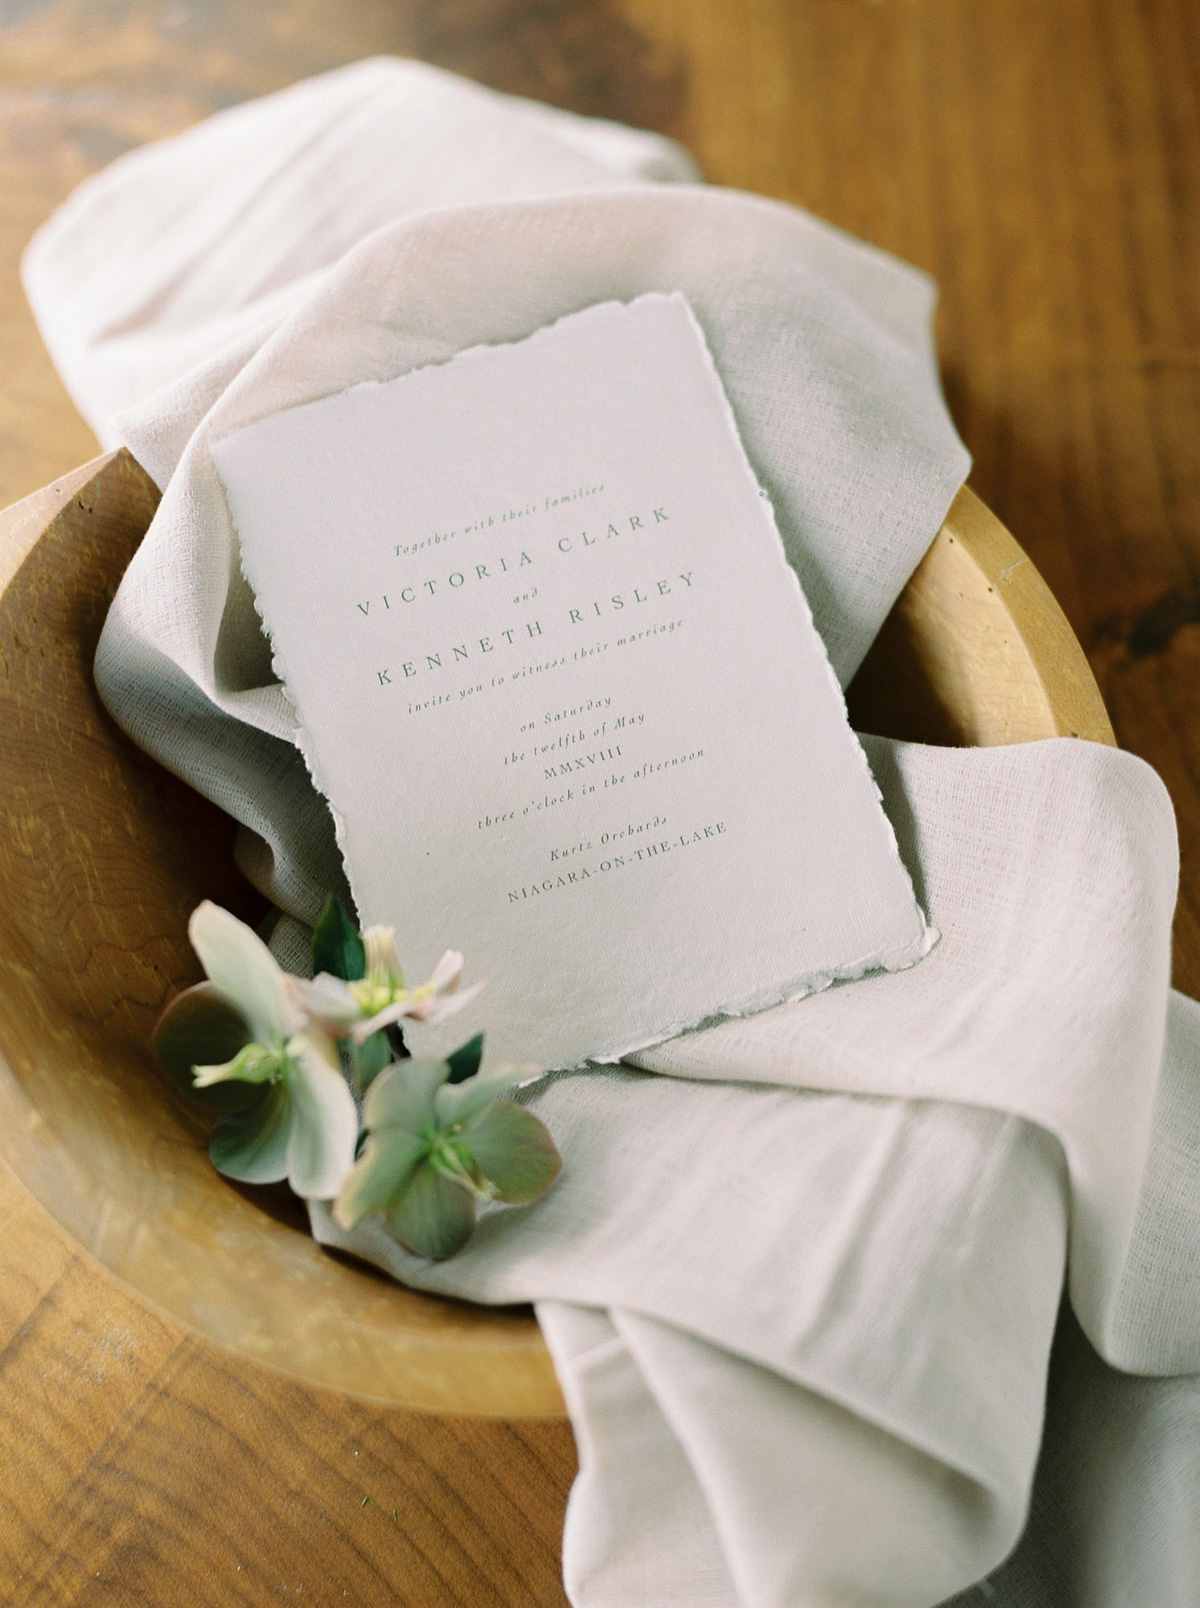 will-reid-photo-vineyard-bride-swish-list-kurtz-orchards-market-niagara-on-the-lake-wedding-editorial-1.jpg